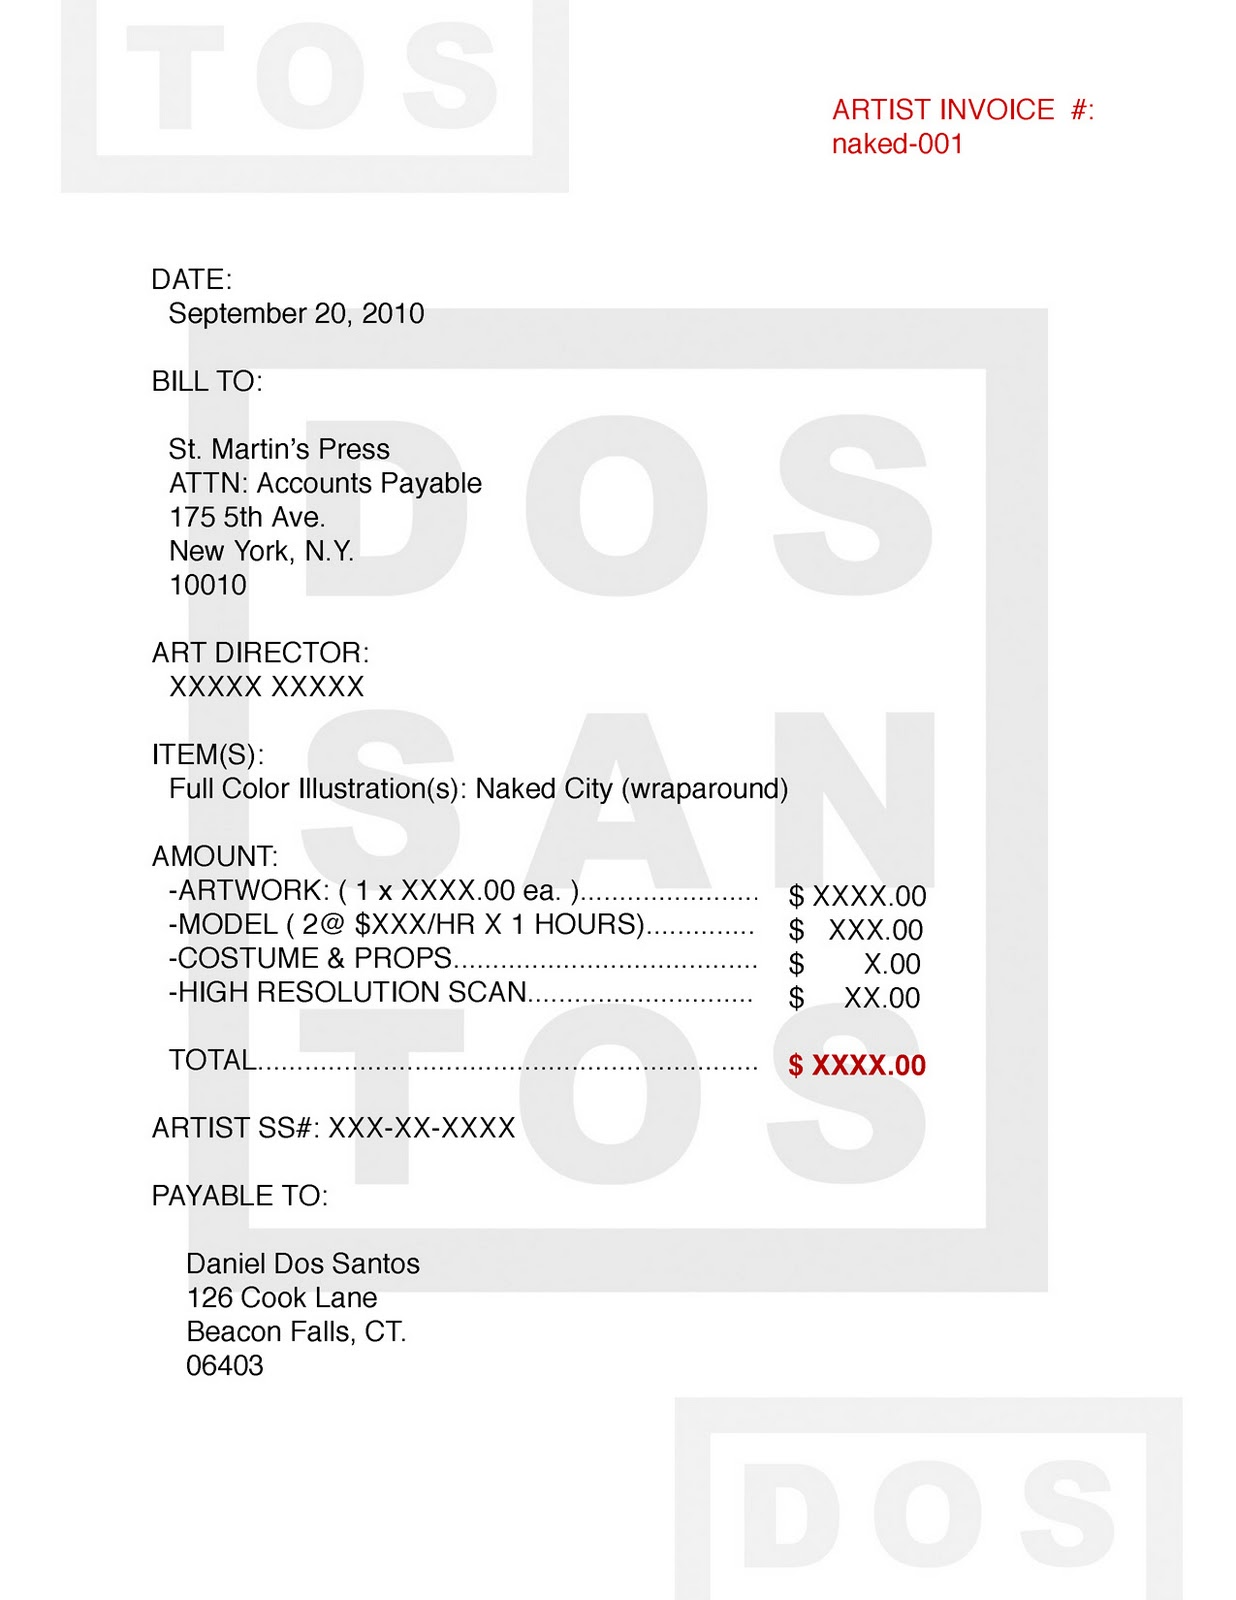 Ebitus  Outstanding Muddy Colors Invoices With Likable I Believe That This Format Contains All The Pertinent Information That A Good Invoice Should Have And Can Serve As A Decent Template For Your Own With Adorable Tax Invoice Template Excel Also Best Invoicing App For Iphone In Addition Hyundai Invoice Pricing And Best Mac Invoicing Software As Well As Invoice For You Additionally Tax Invoice Requirements From Muddycolorsblogspotcom With Ebitus  Likable Muddy Colors Invoices With Adorable I Believe That This Format Contains All The Pertinent Information That A Good Invoice Should Have And Can Serve As A Decent Template For Your Own And Outstanding Tax Invoice Template Excel Also Best Invoicing App For Iphone In Addition Hyundai Invoice Pricing From Muddycolorsblogspotcom